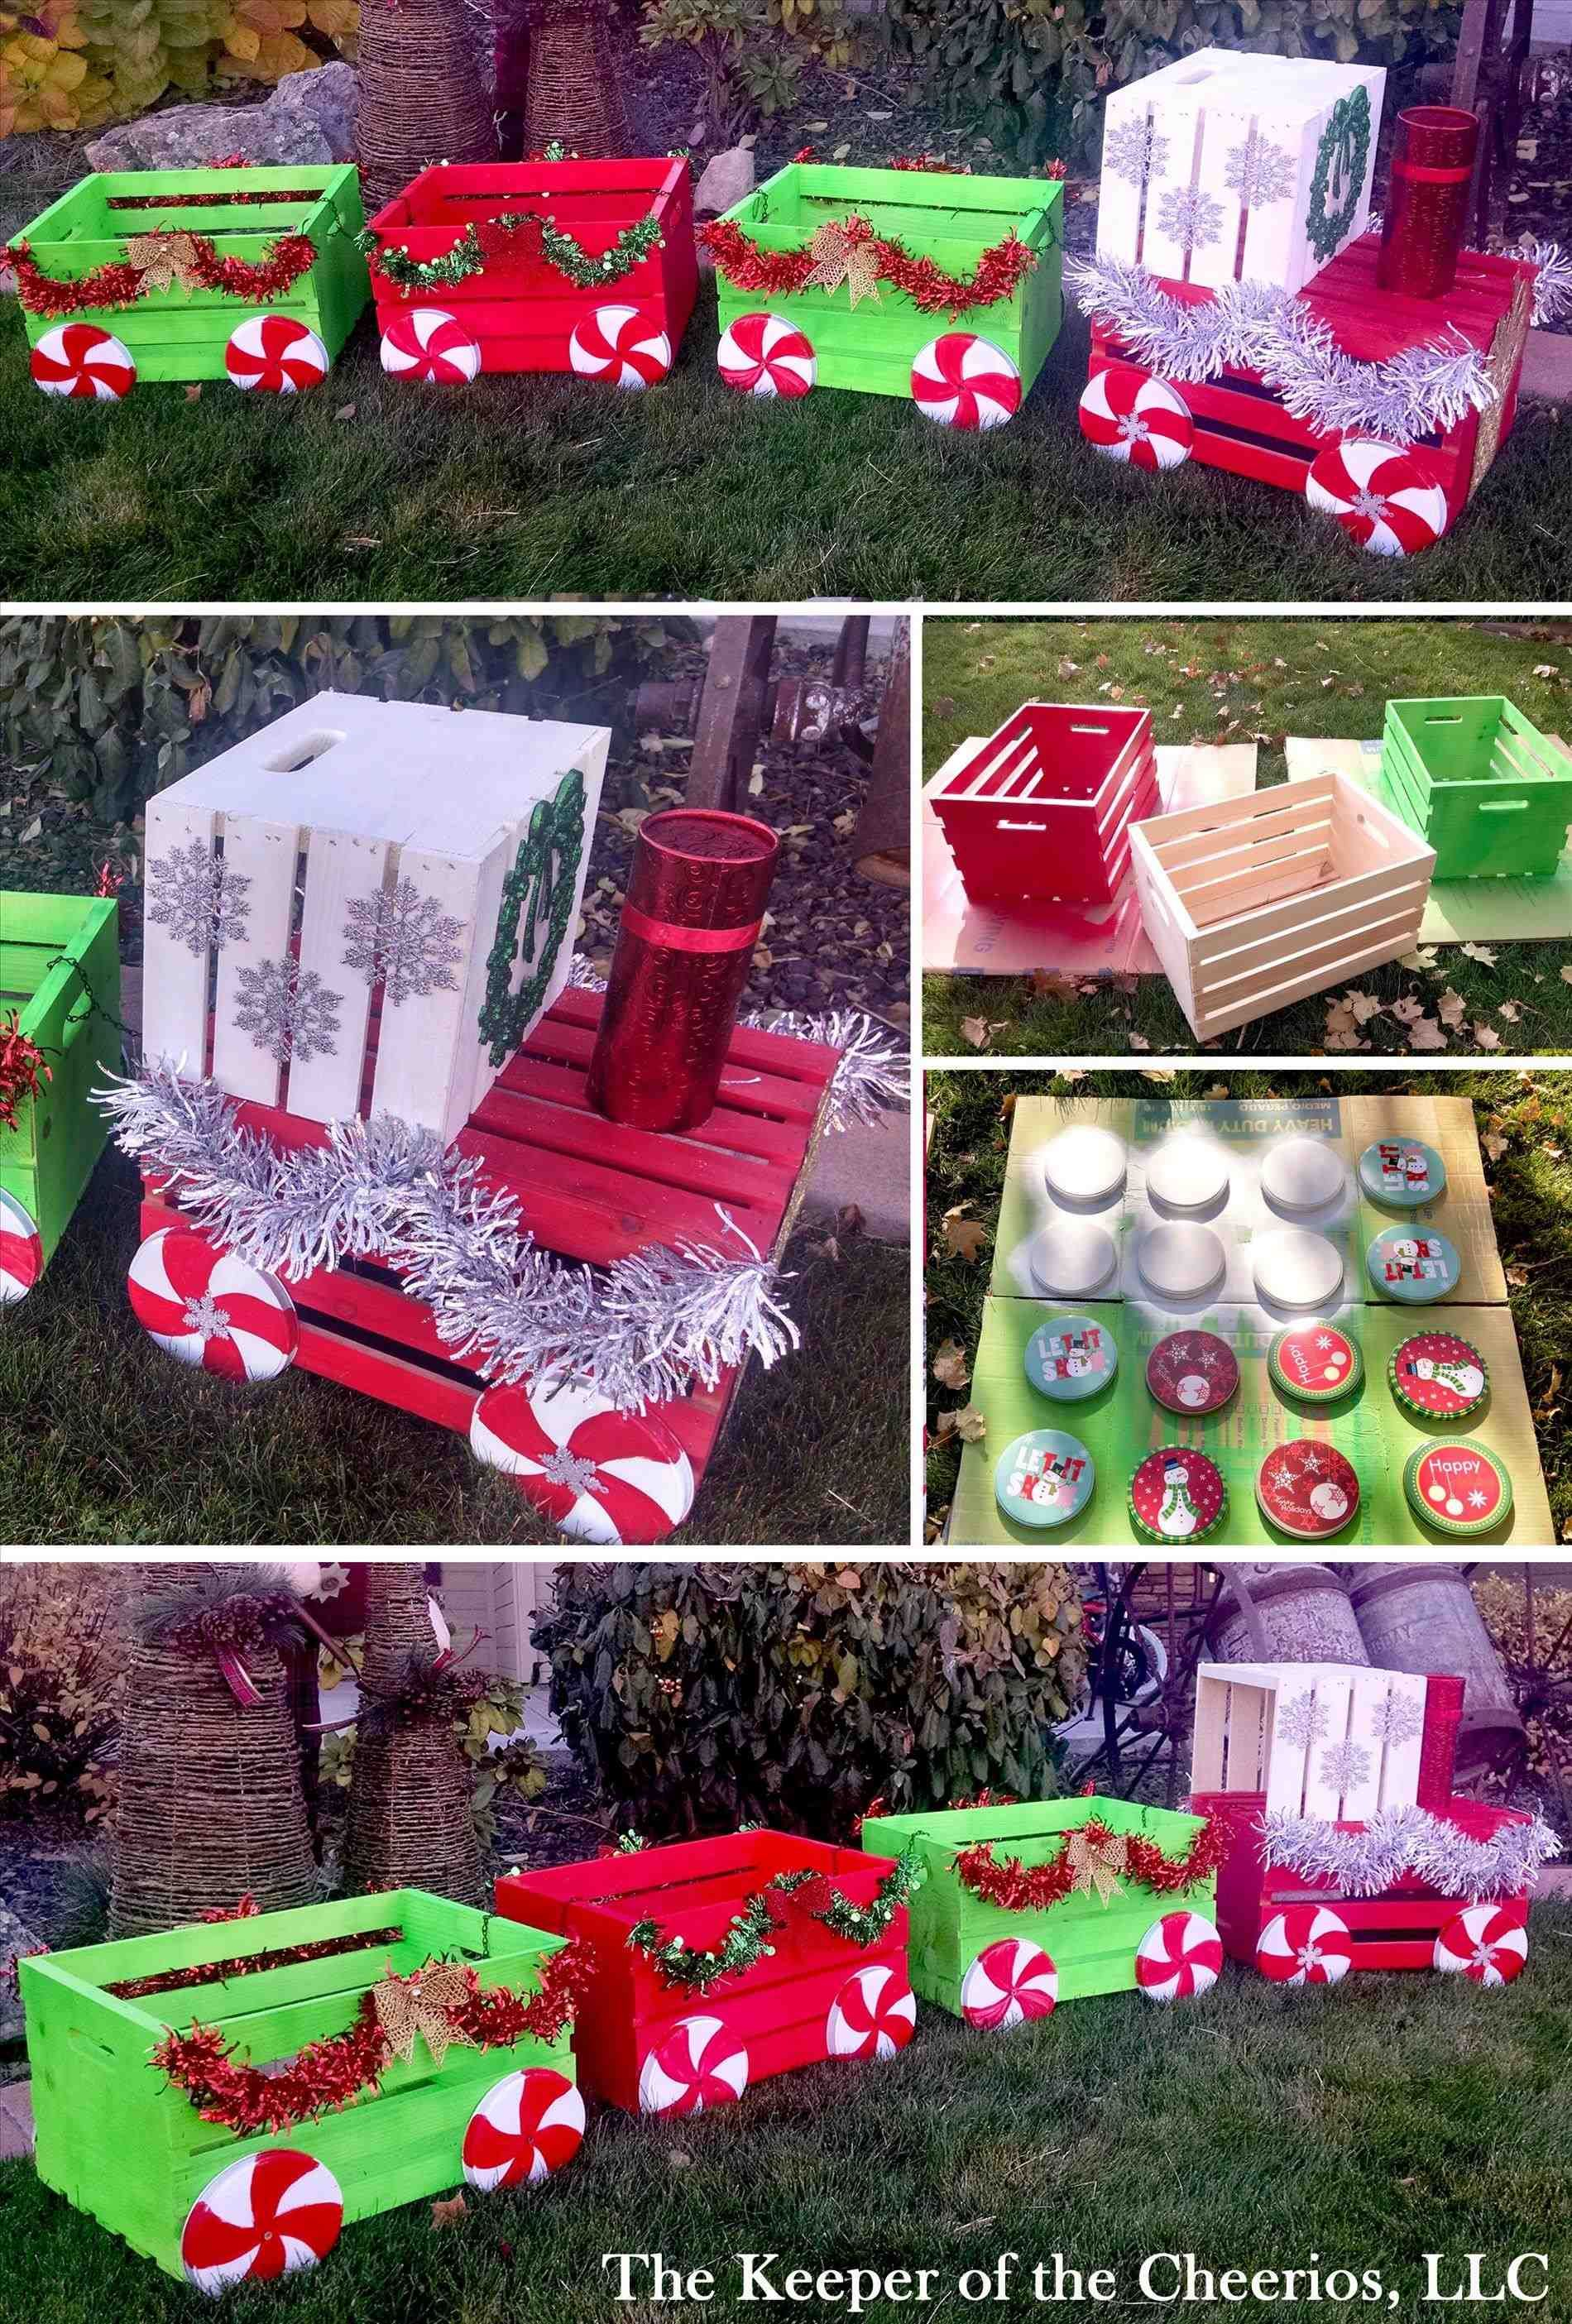 new post diy outdoor lawn christmas decorations has been published